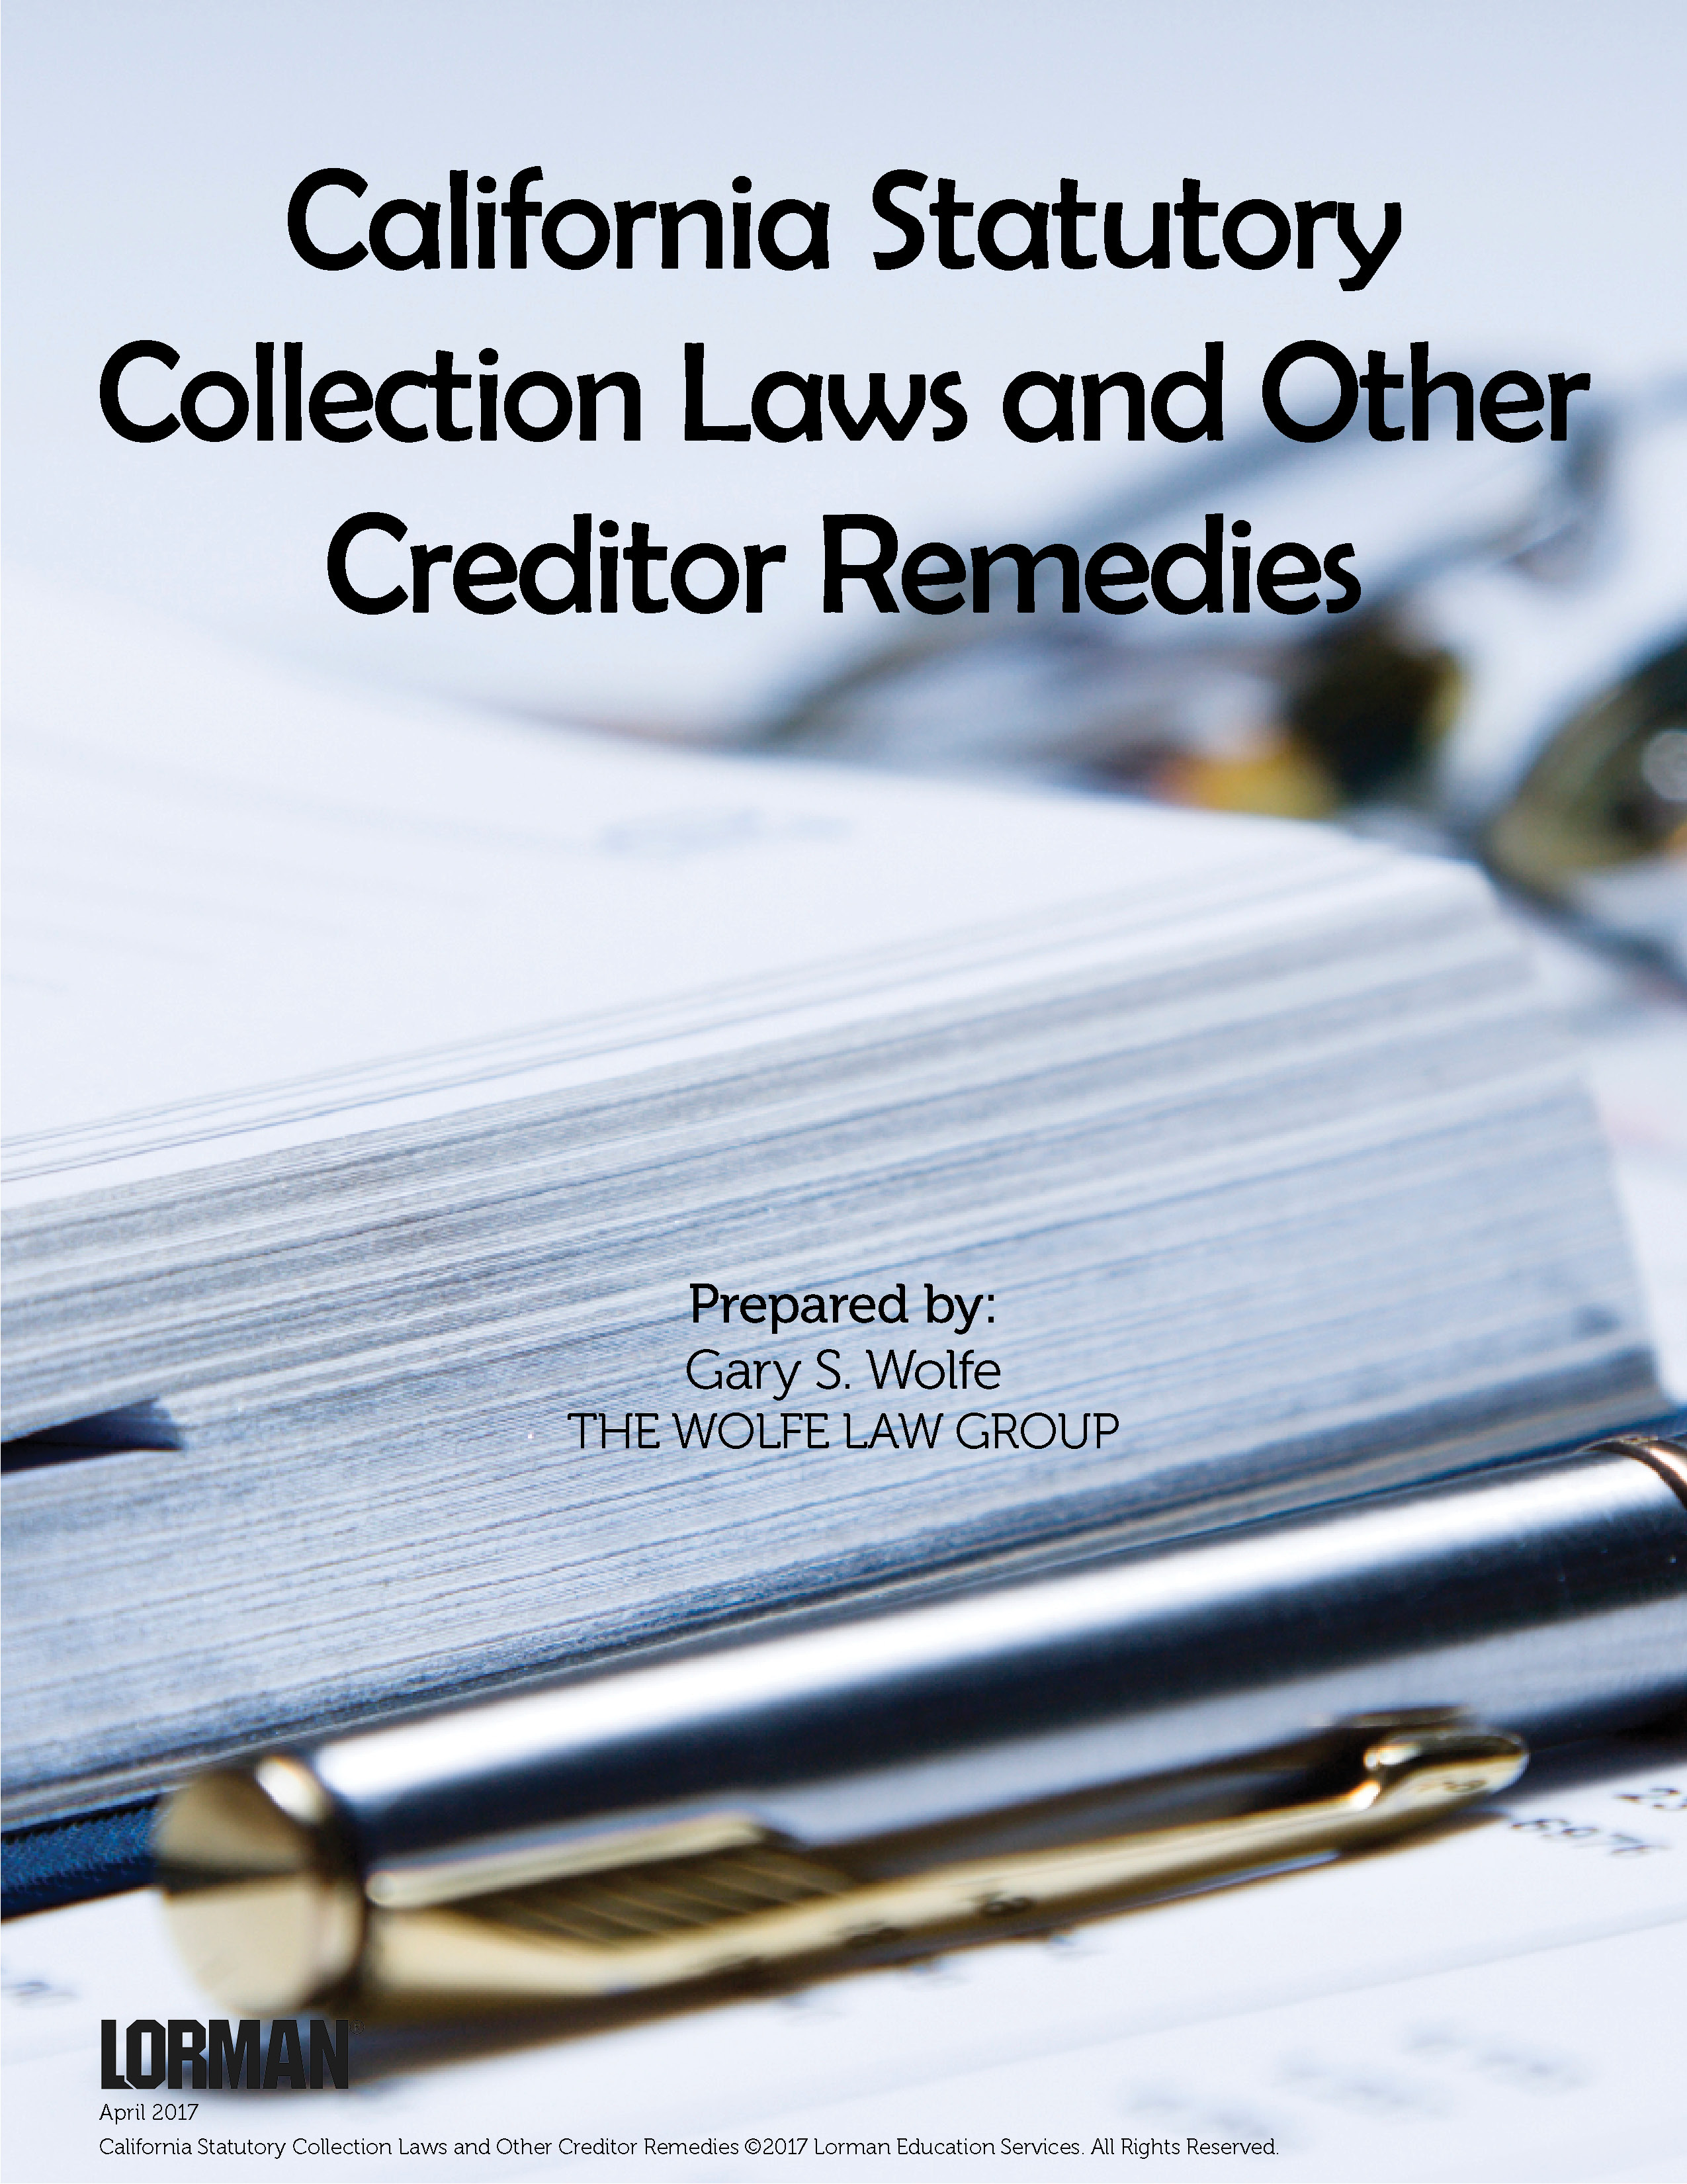 California Statutory Collection Laws